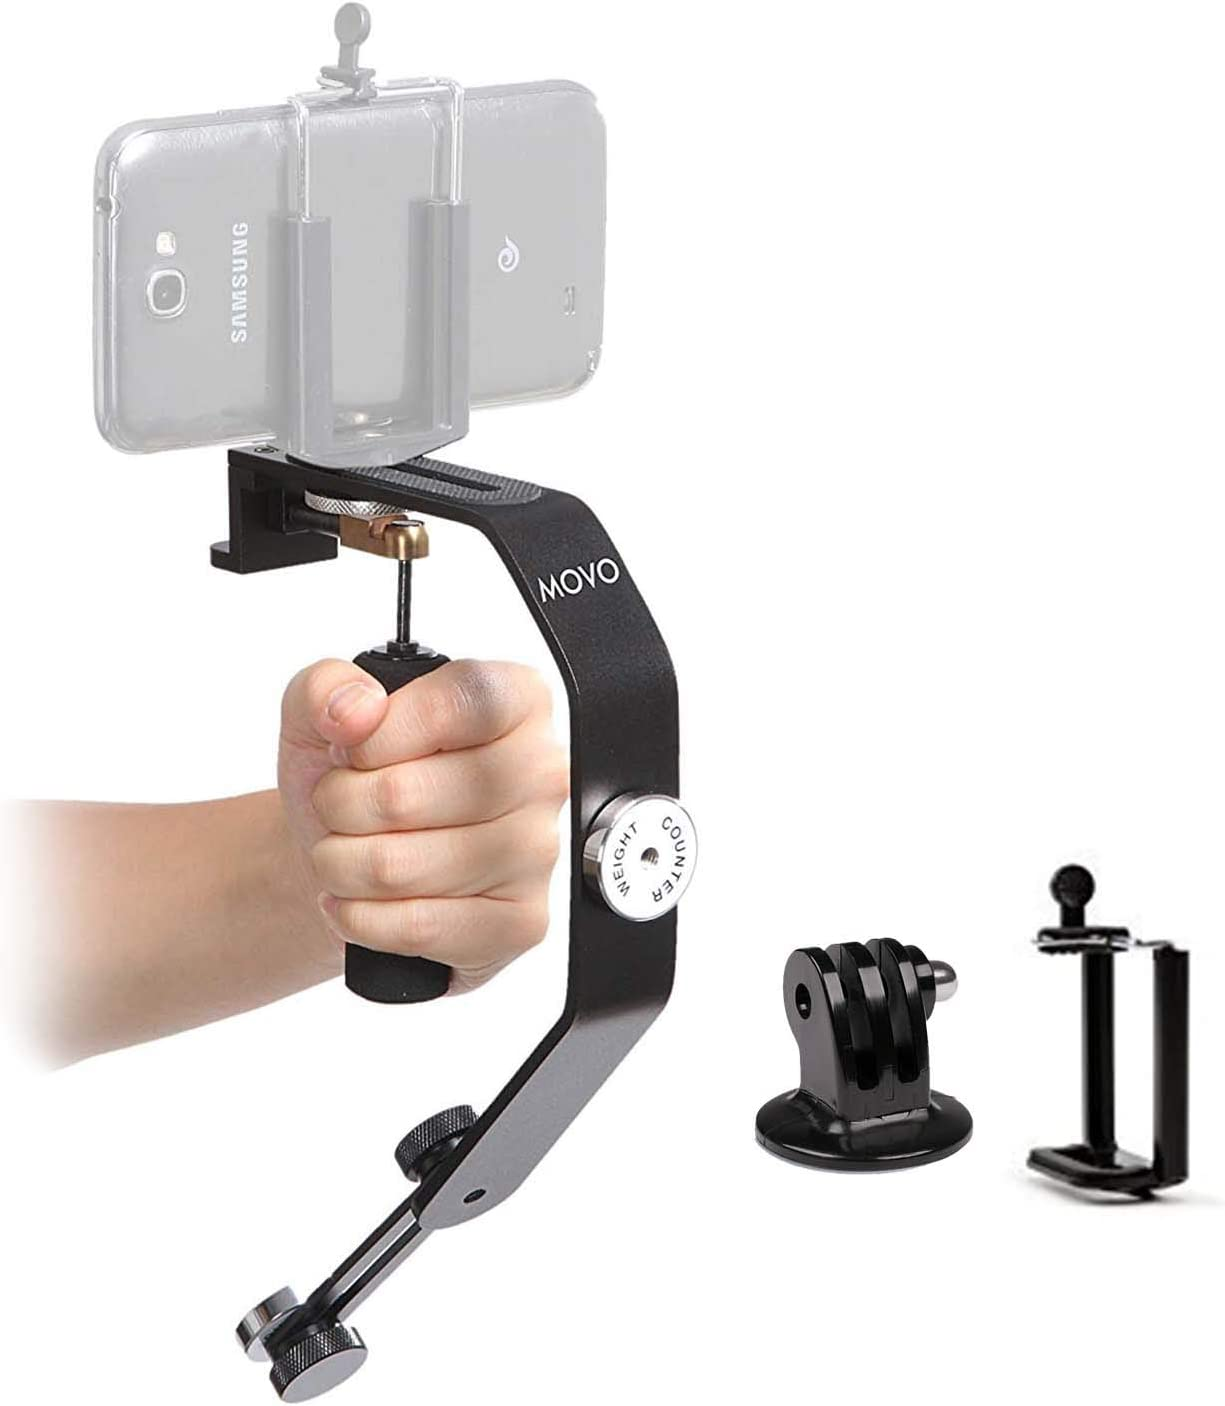 Movo Handheld Video Stabilizer System Compatible with GoPro Hero, HERO2, HERO3, HERO4, HERO5, HERO6, HERO7 & Apple iPhone 5, 5S, 6, 6S, 7, 8, X, XS, XS Max, Samsung Galaxy + Note Smartphones